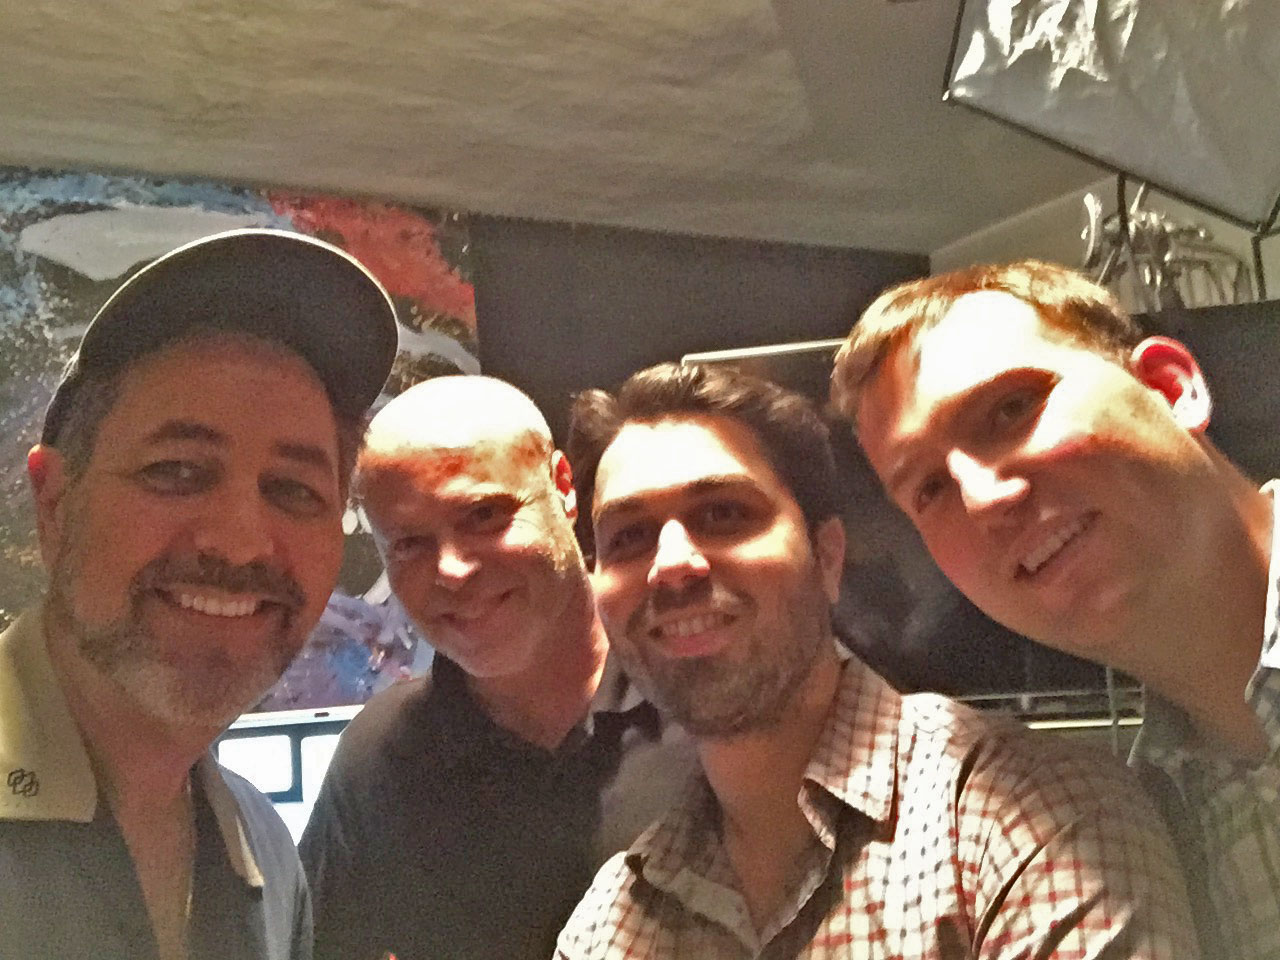 With shooter Steve Weiss and Executive Producers Yoav Attias & Nick Burnett